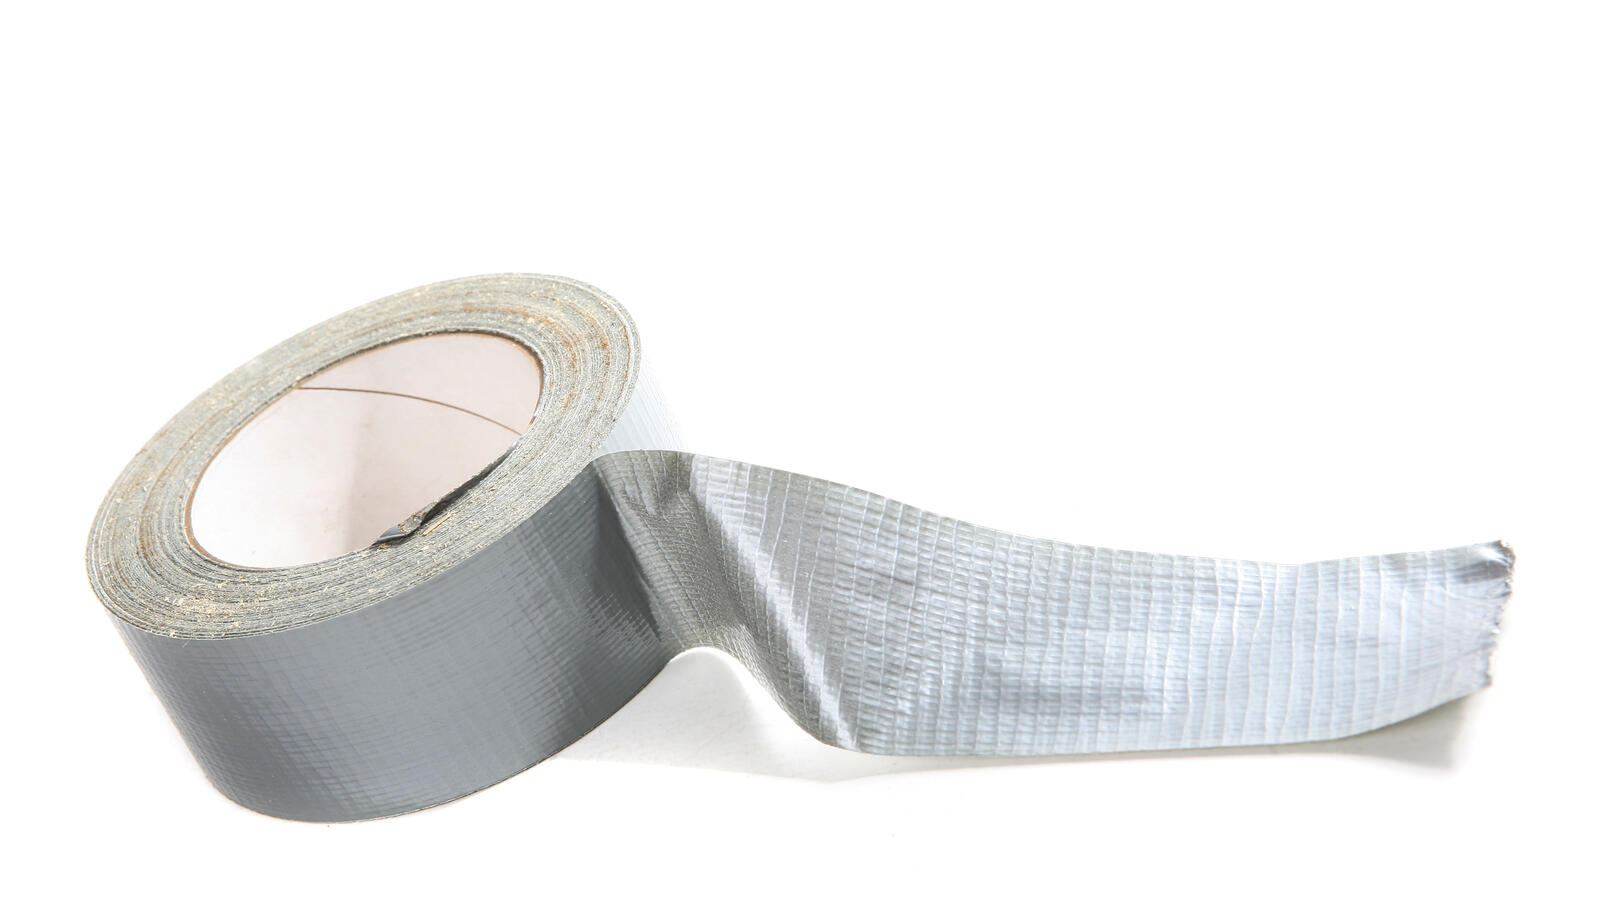 Man Duct-Taped To Seat After Harassing Flight Attendants